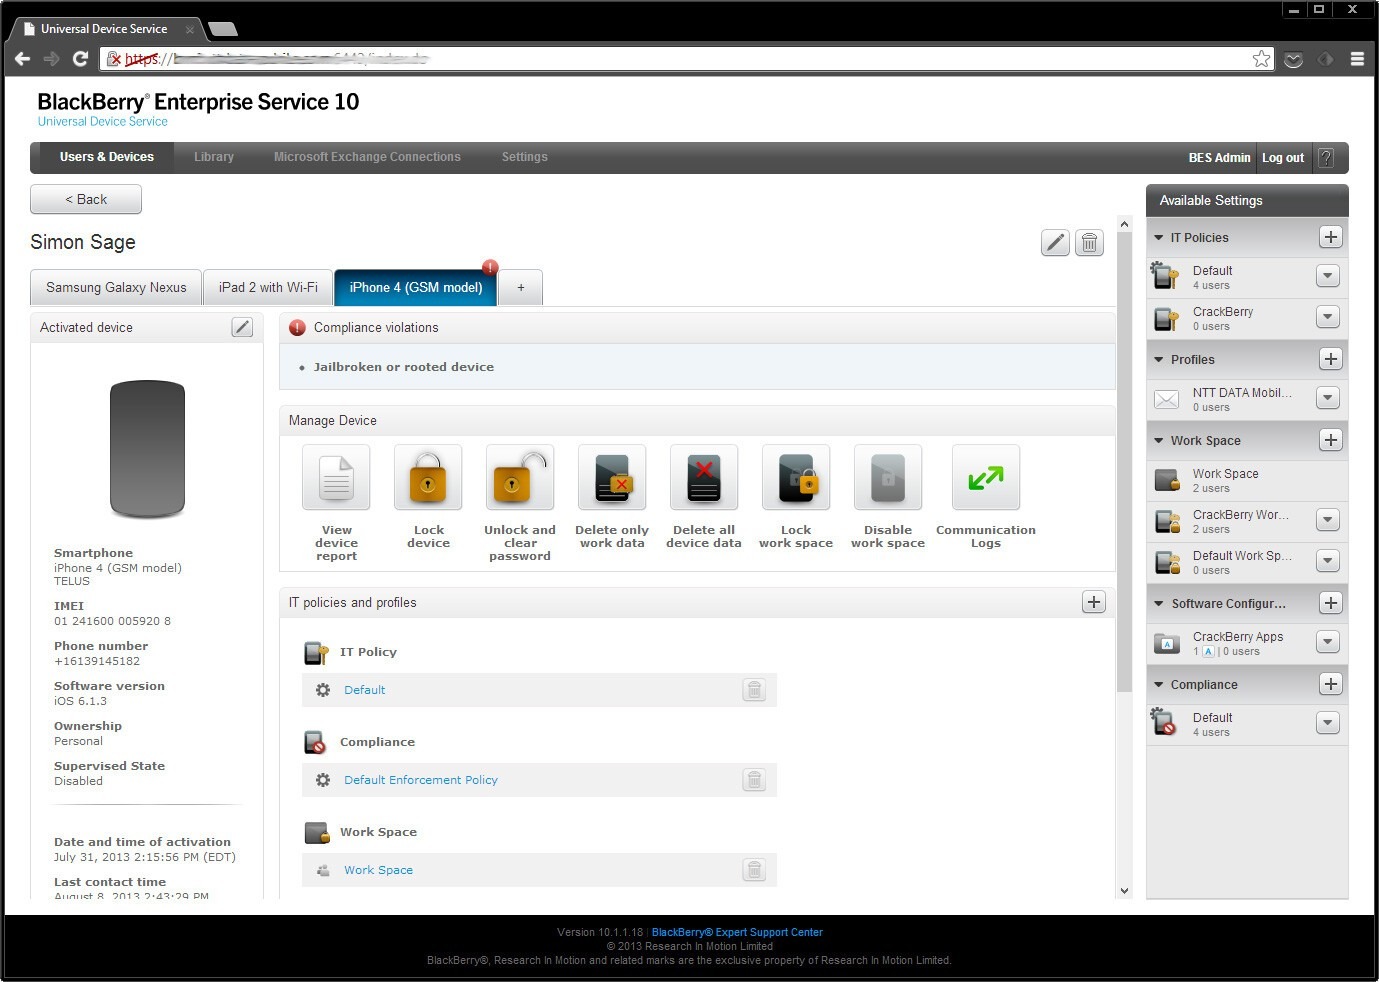 BlackBerry Secure Workspace